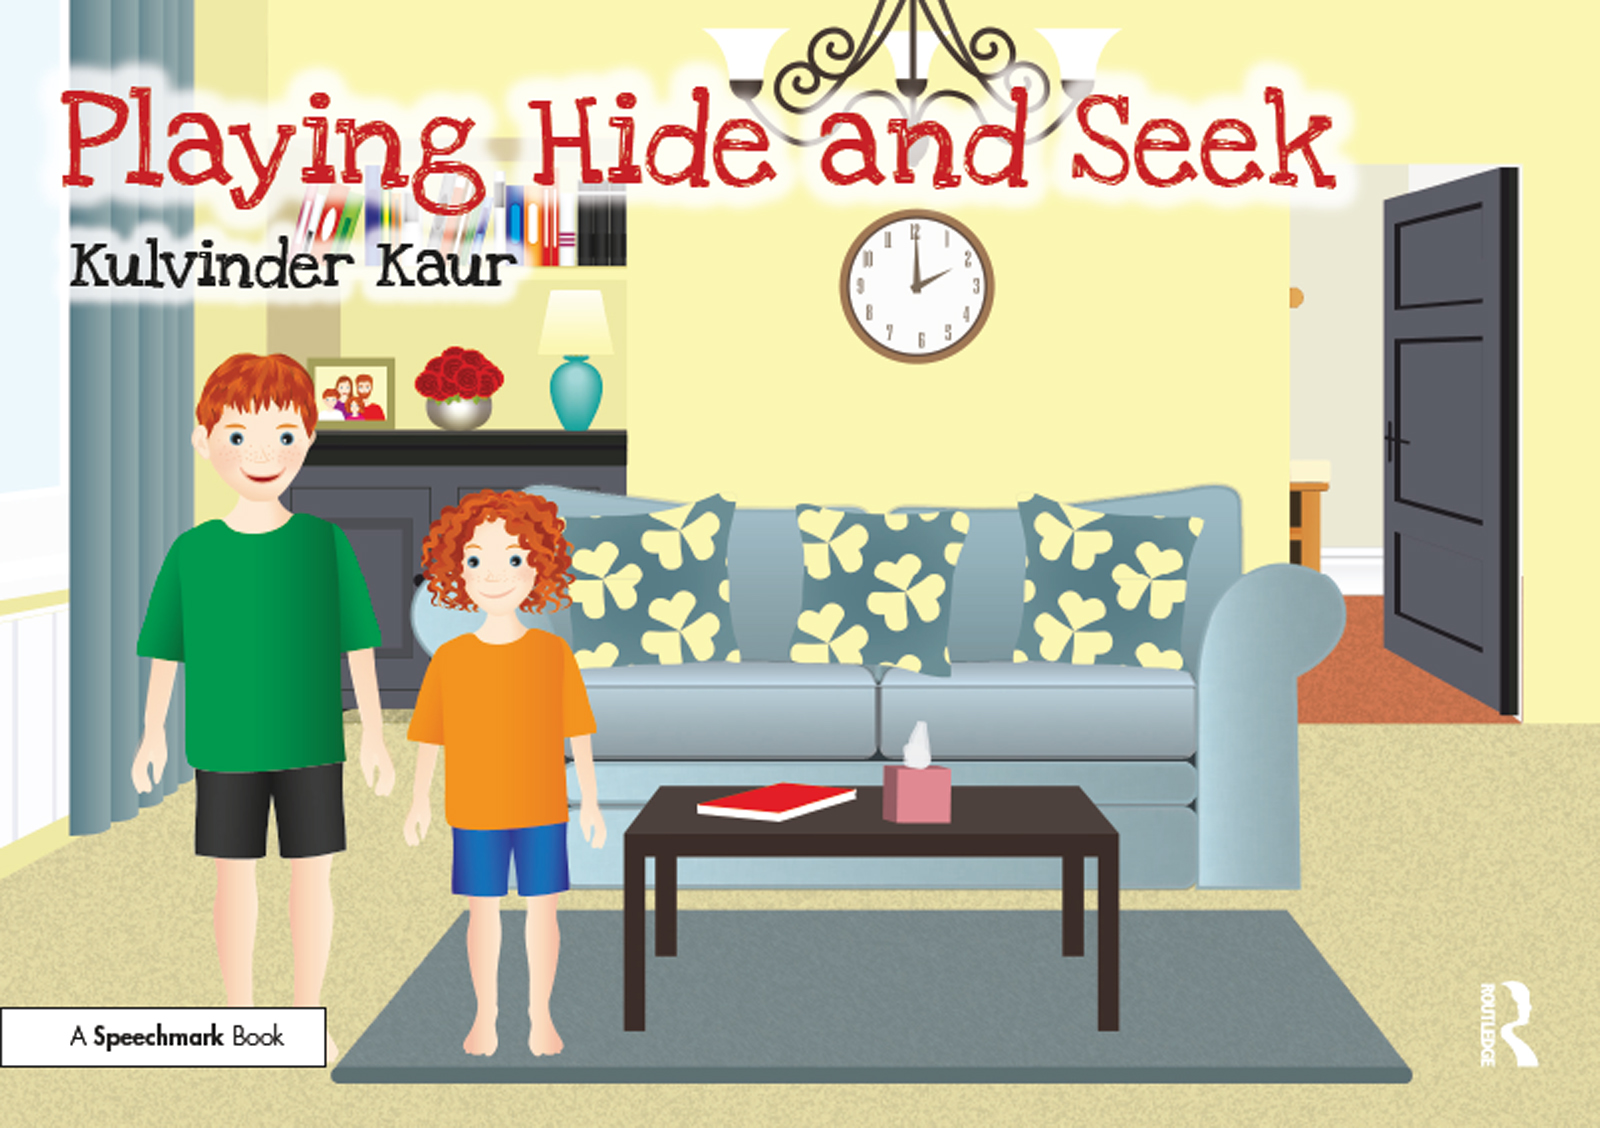 Playing Hide and Seek